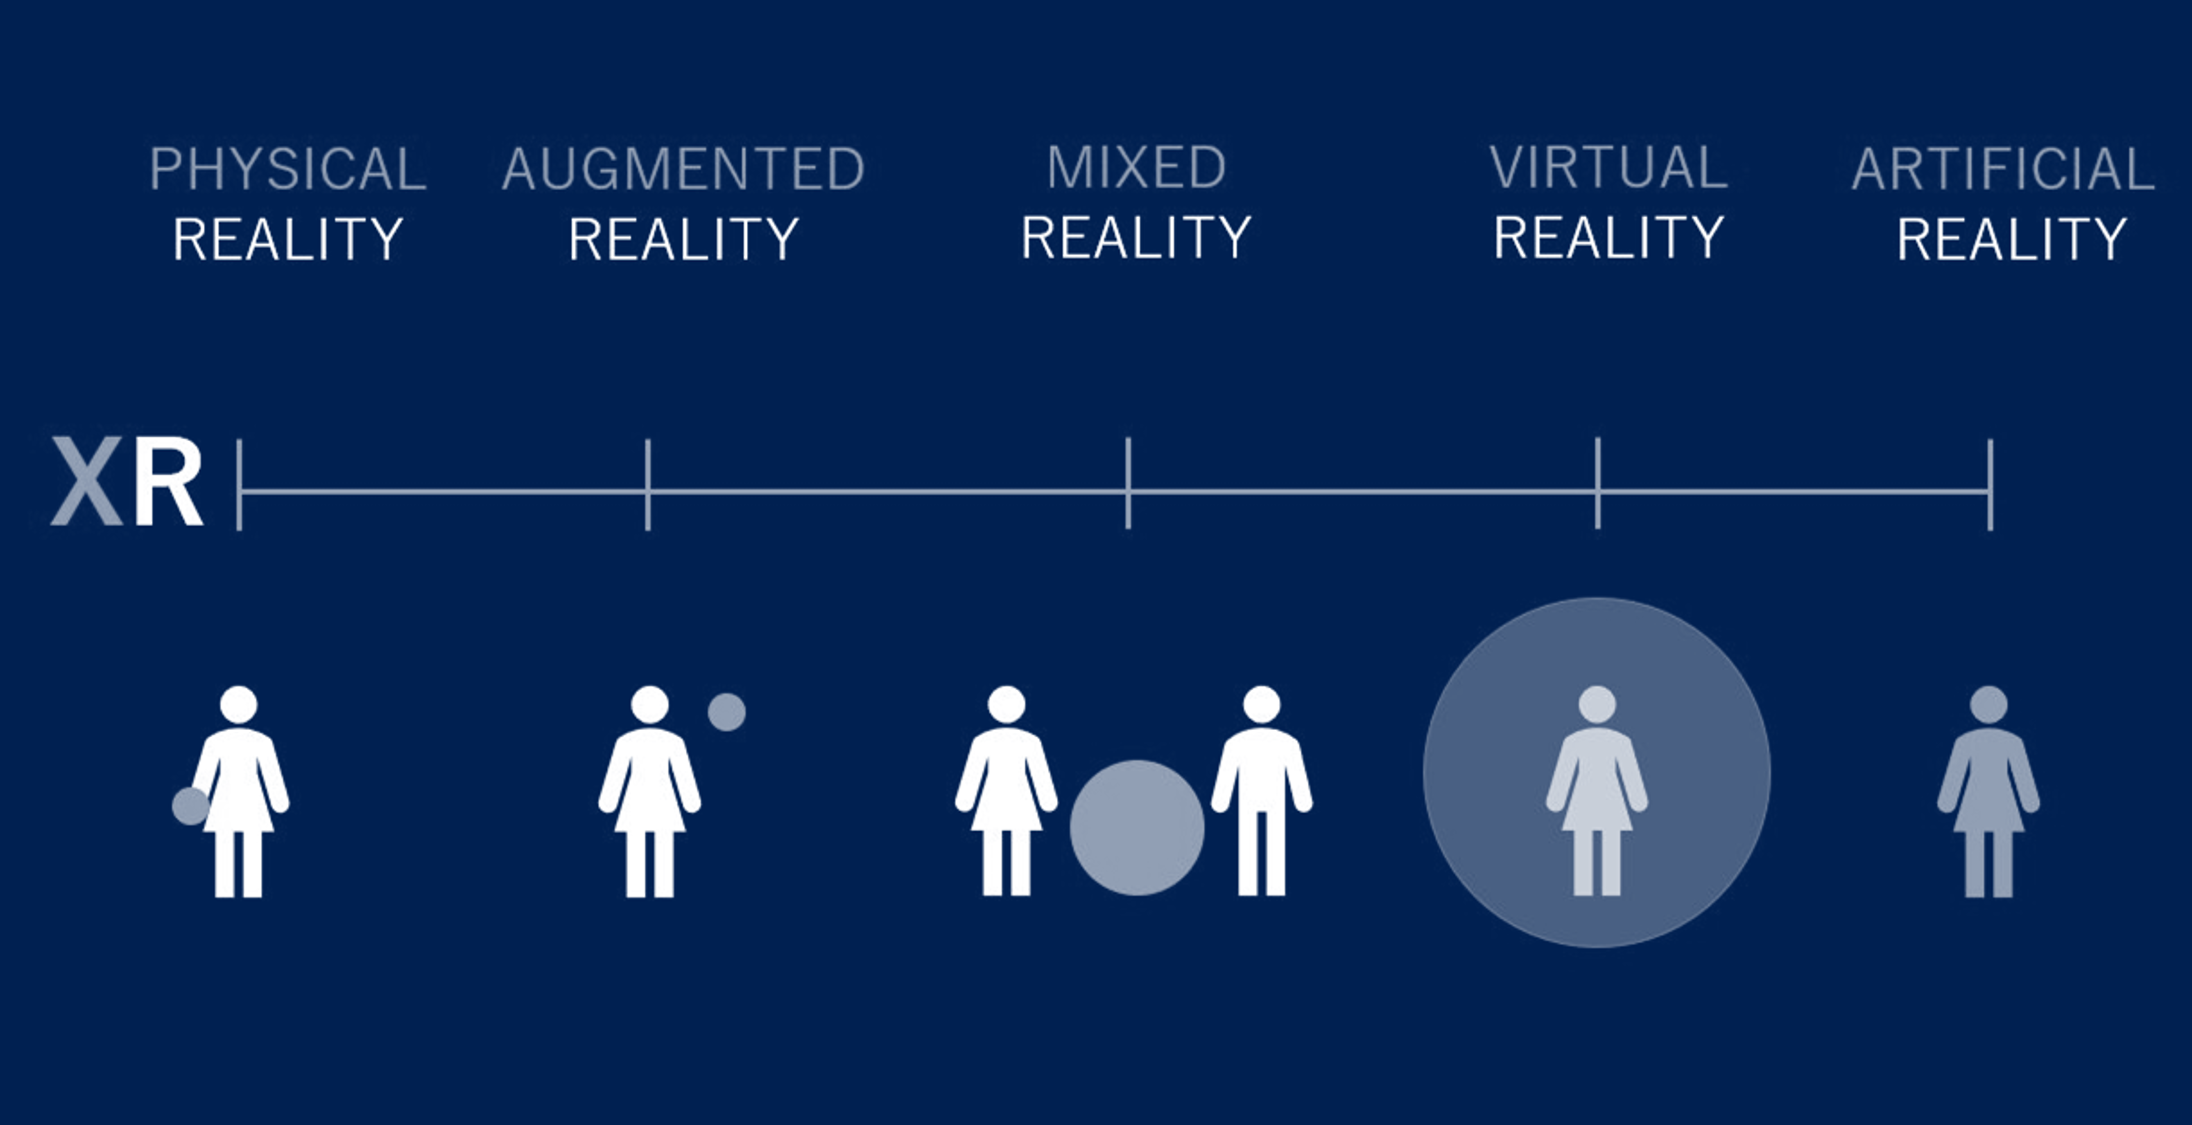 Extended reality spectrum from physical reality to artificial reality